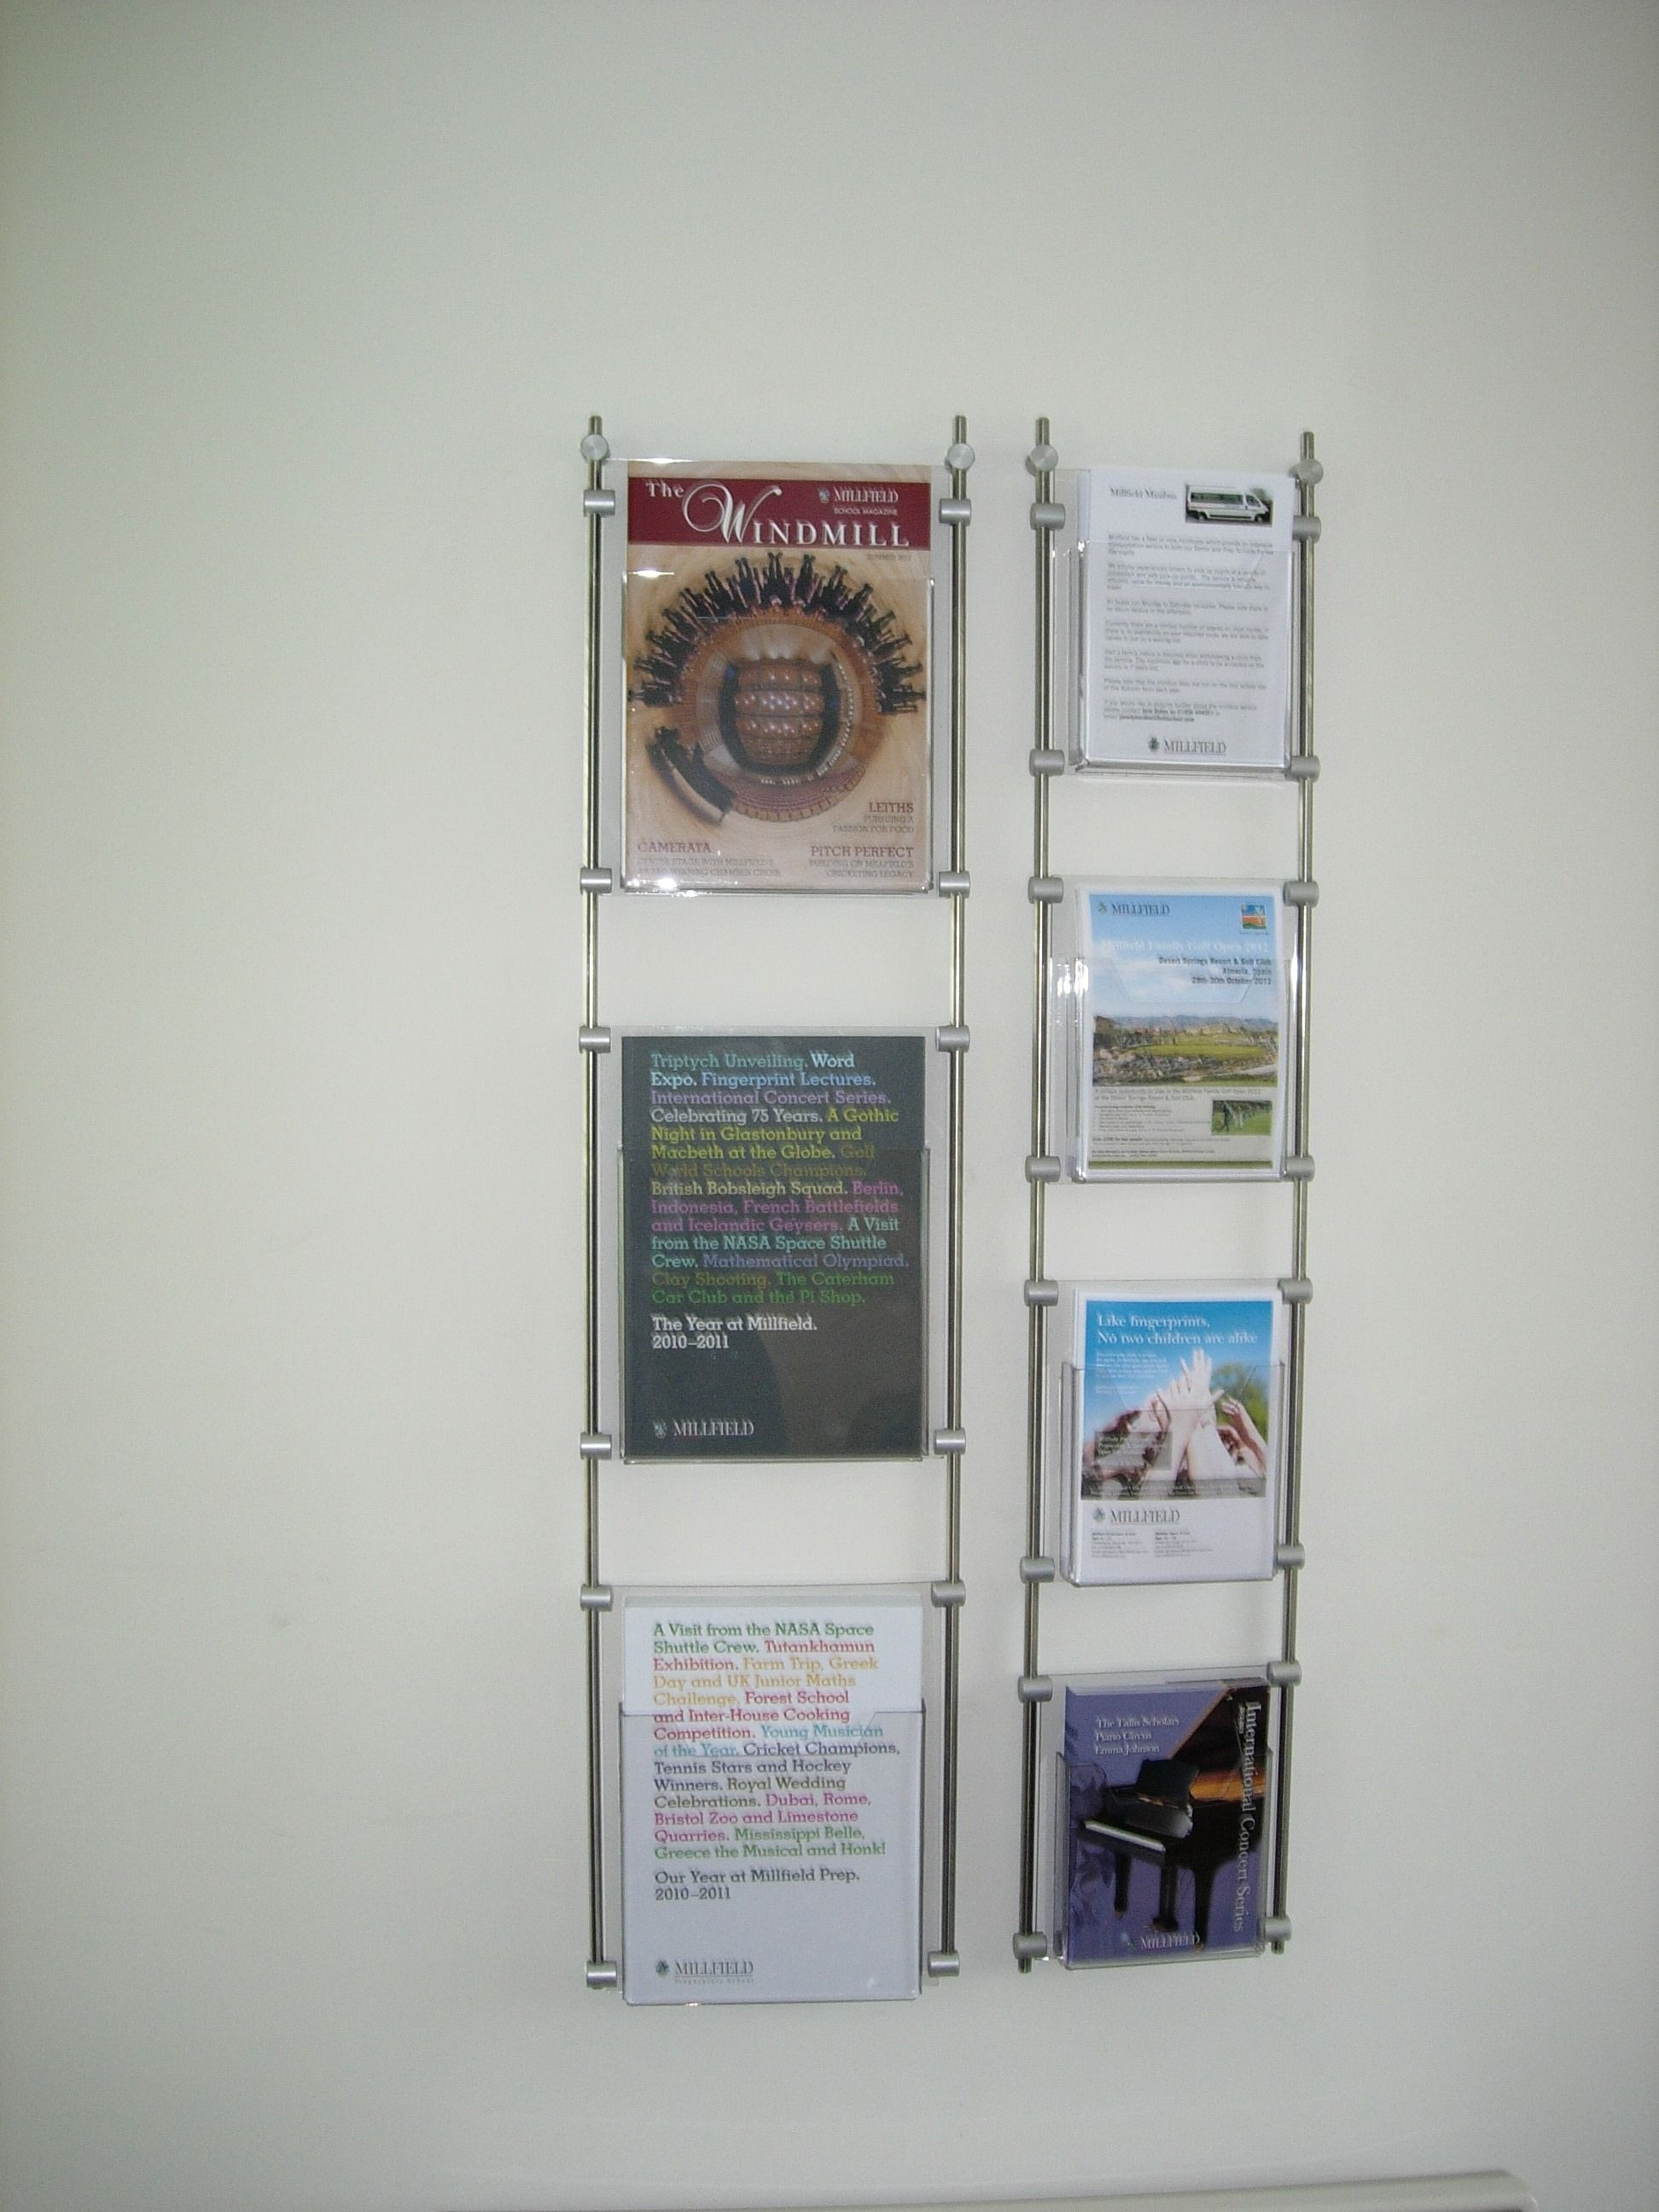 acrylic wall wooden lucite brochure dimensions ideas holders mount shelf mounted for x intended rack furniture